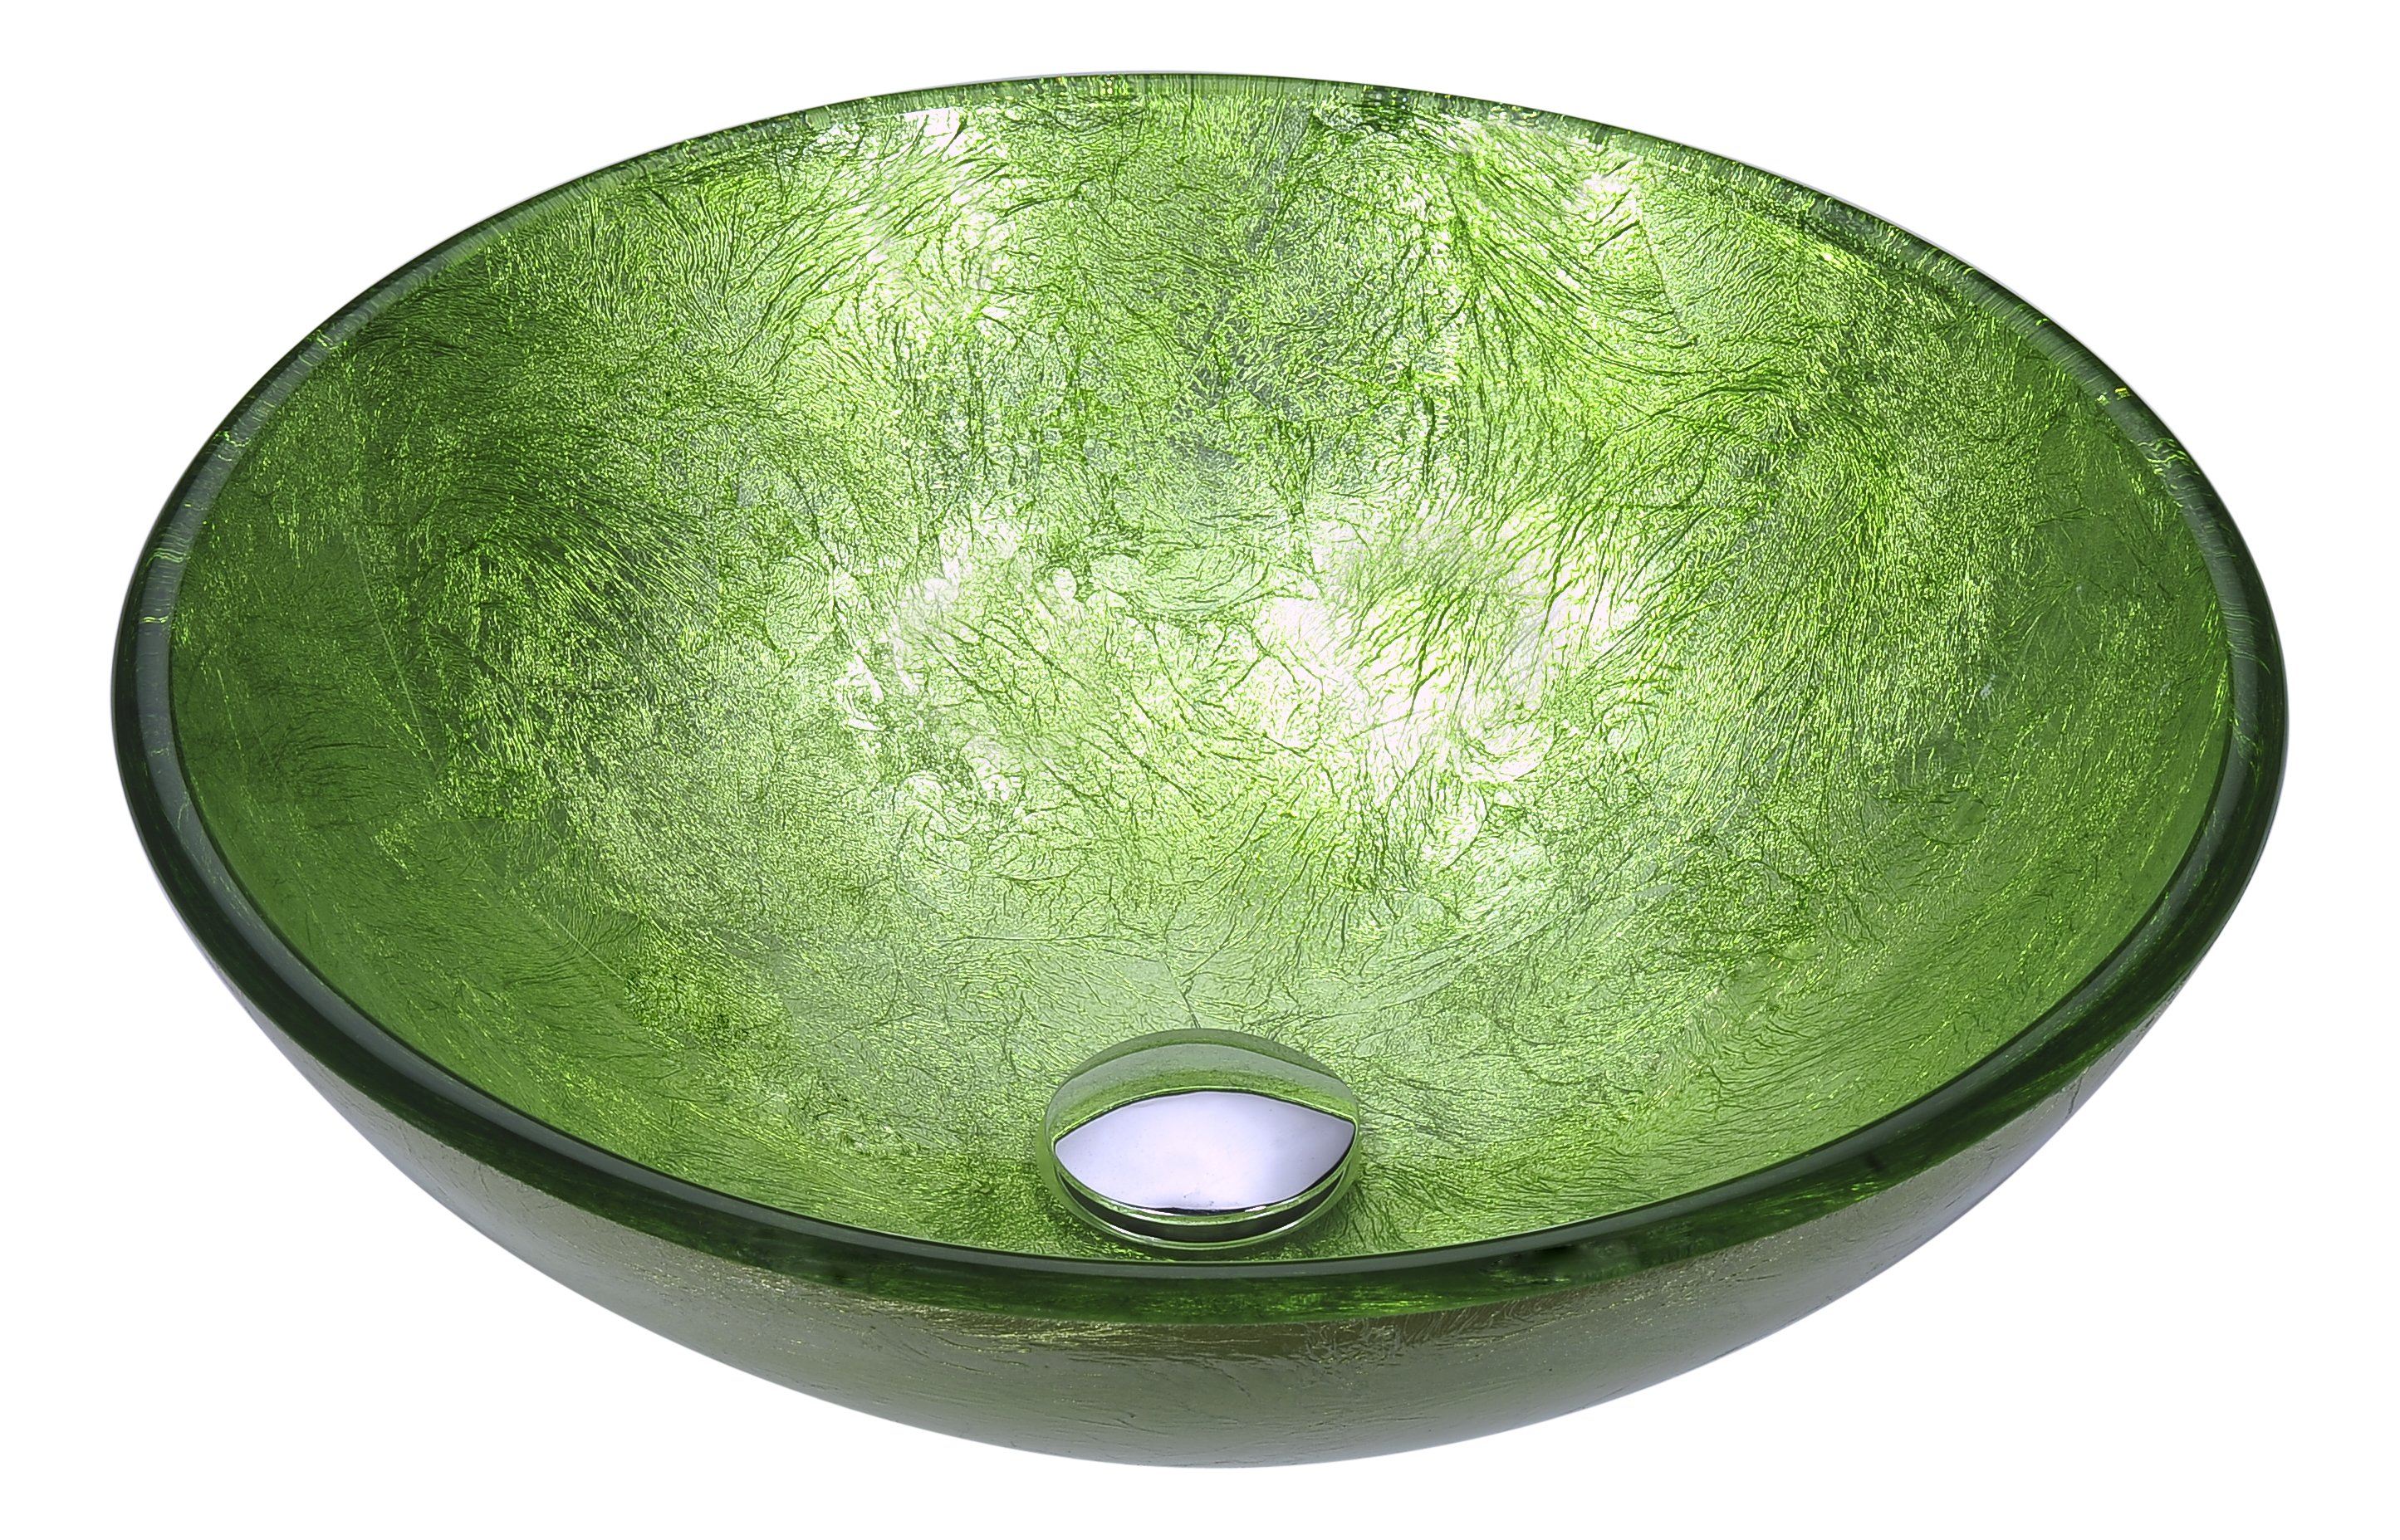 16 Posh Series Deco Glass Vessel Sink In Golden Green Ls Az290